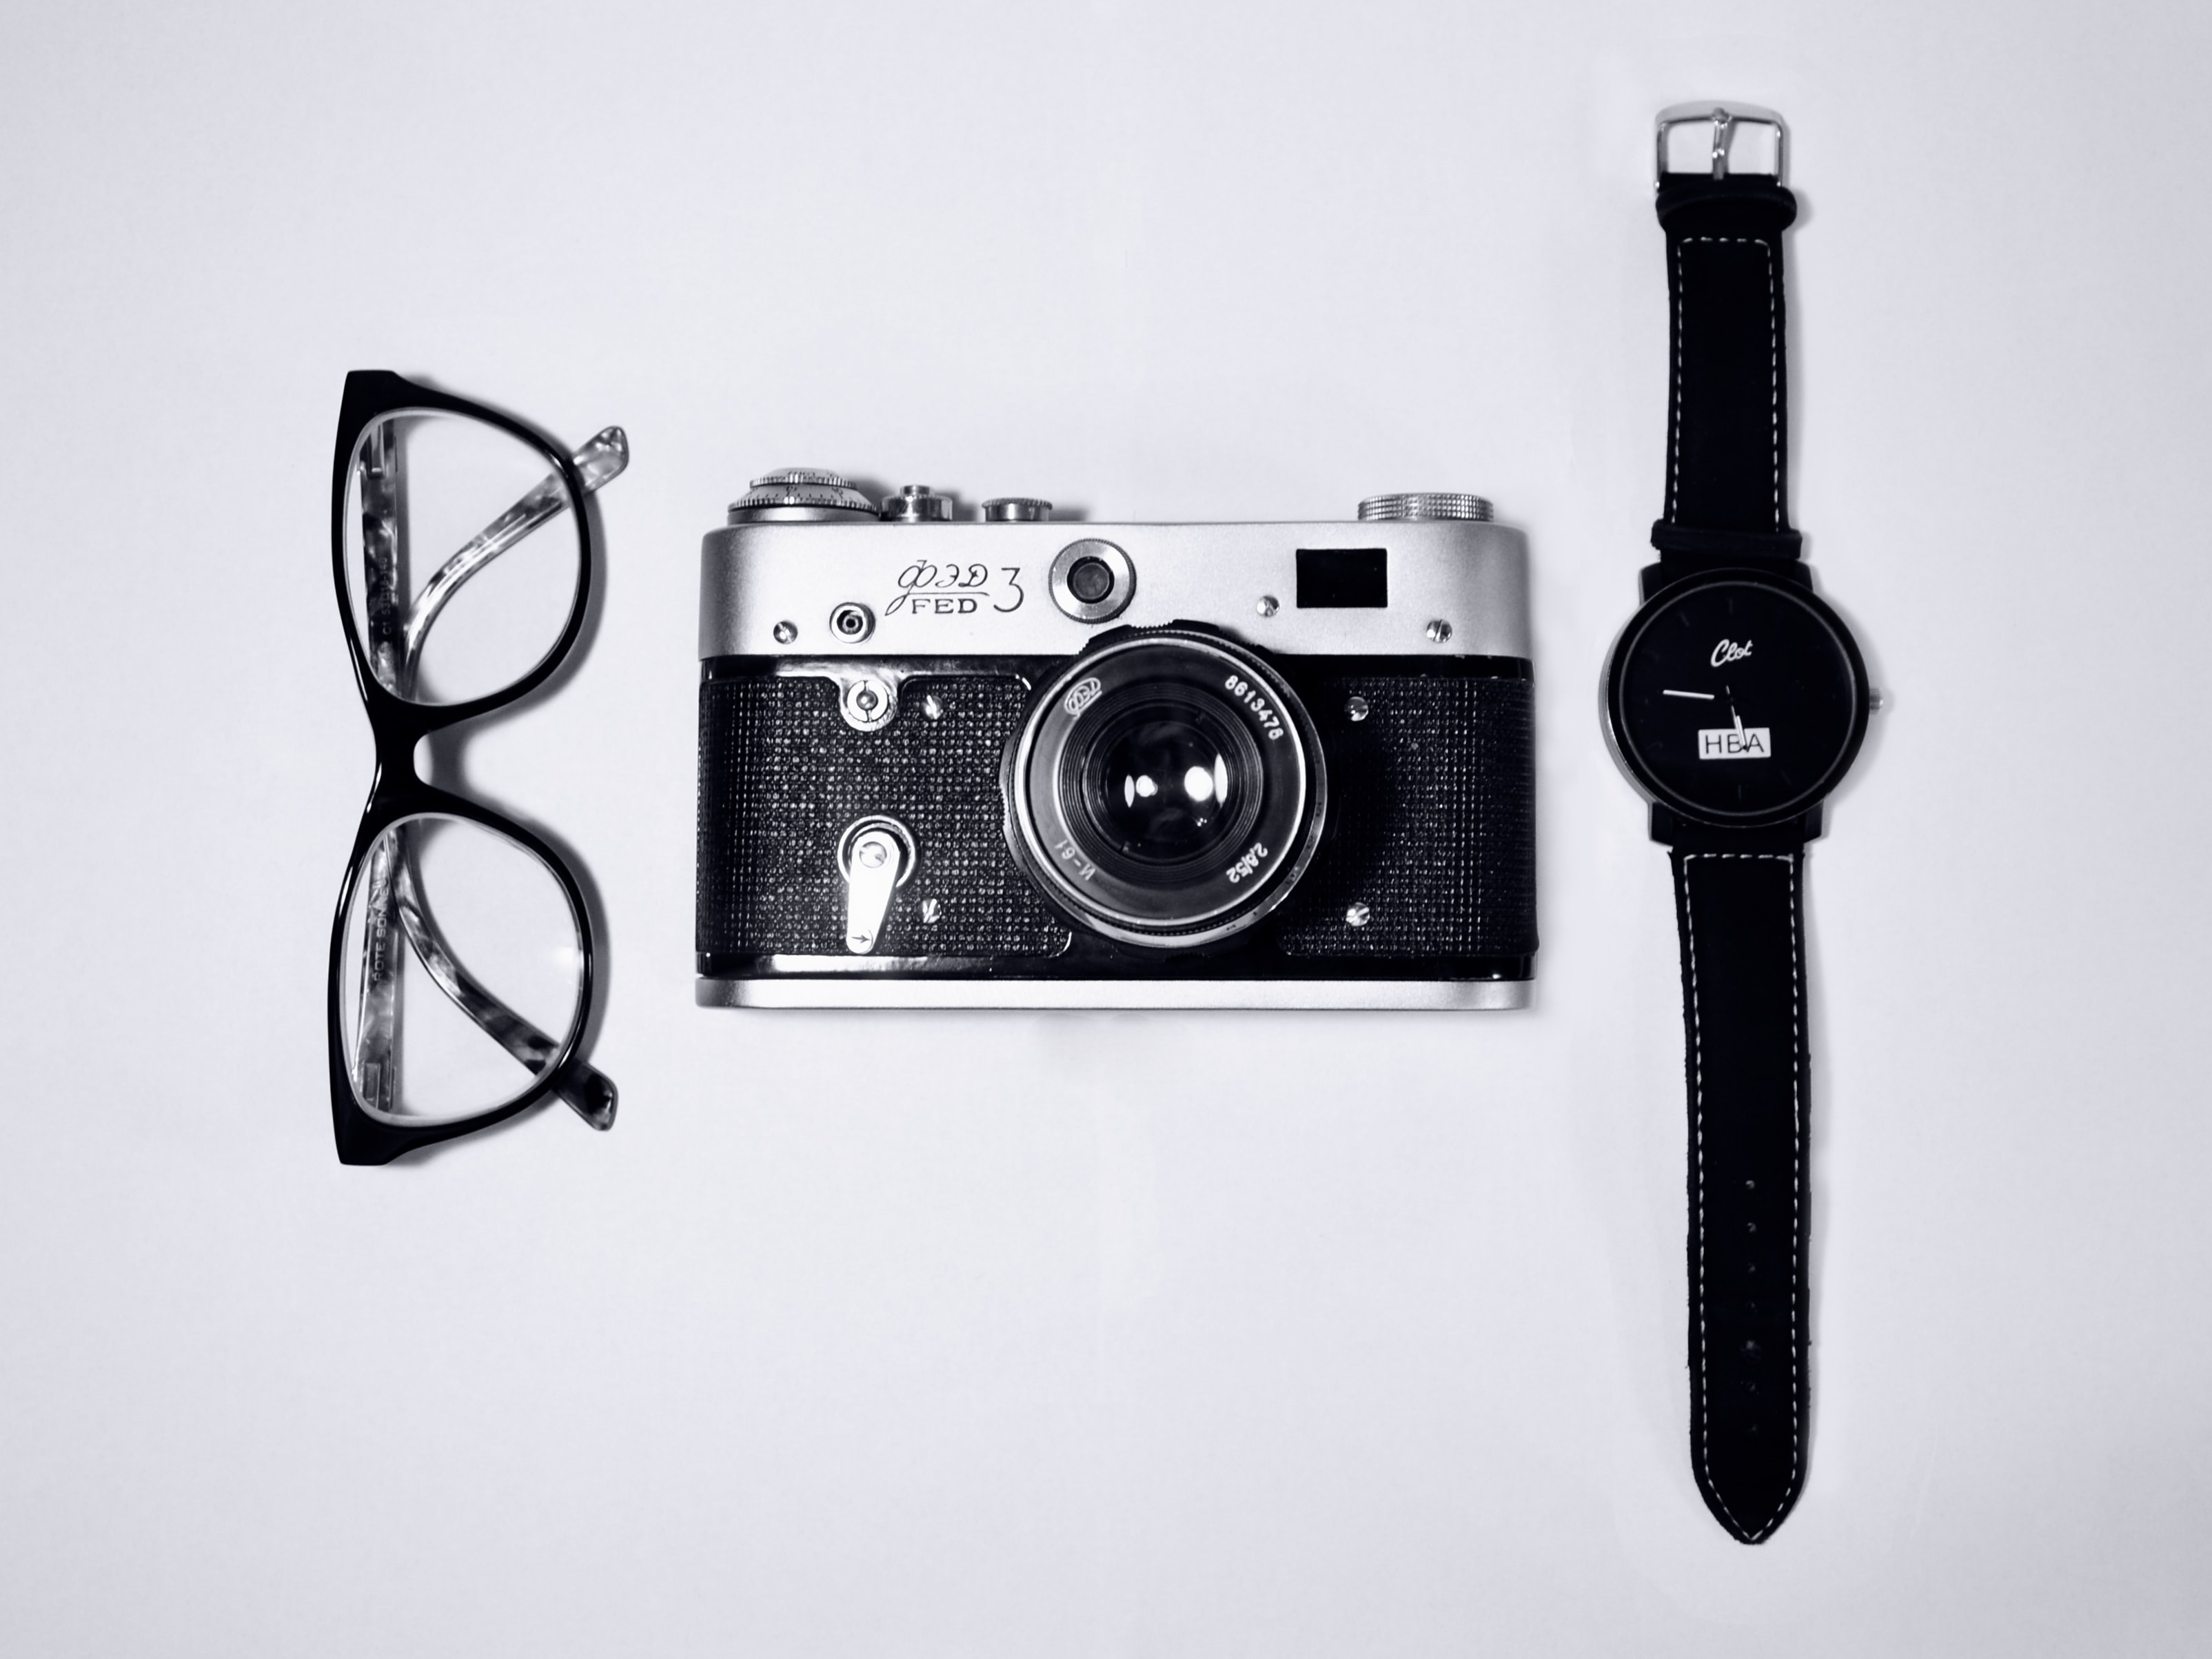 black and silver camera; eyeglasses with black frames; black analog watch